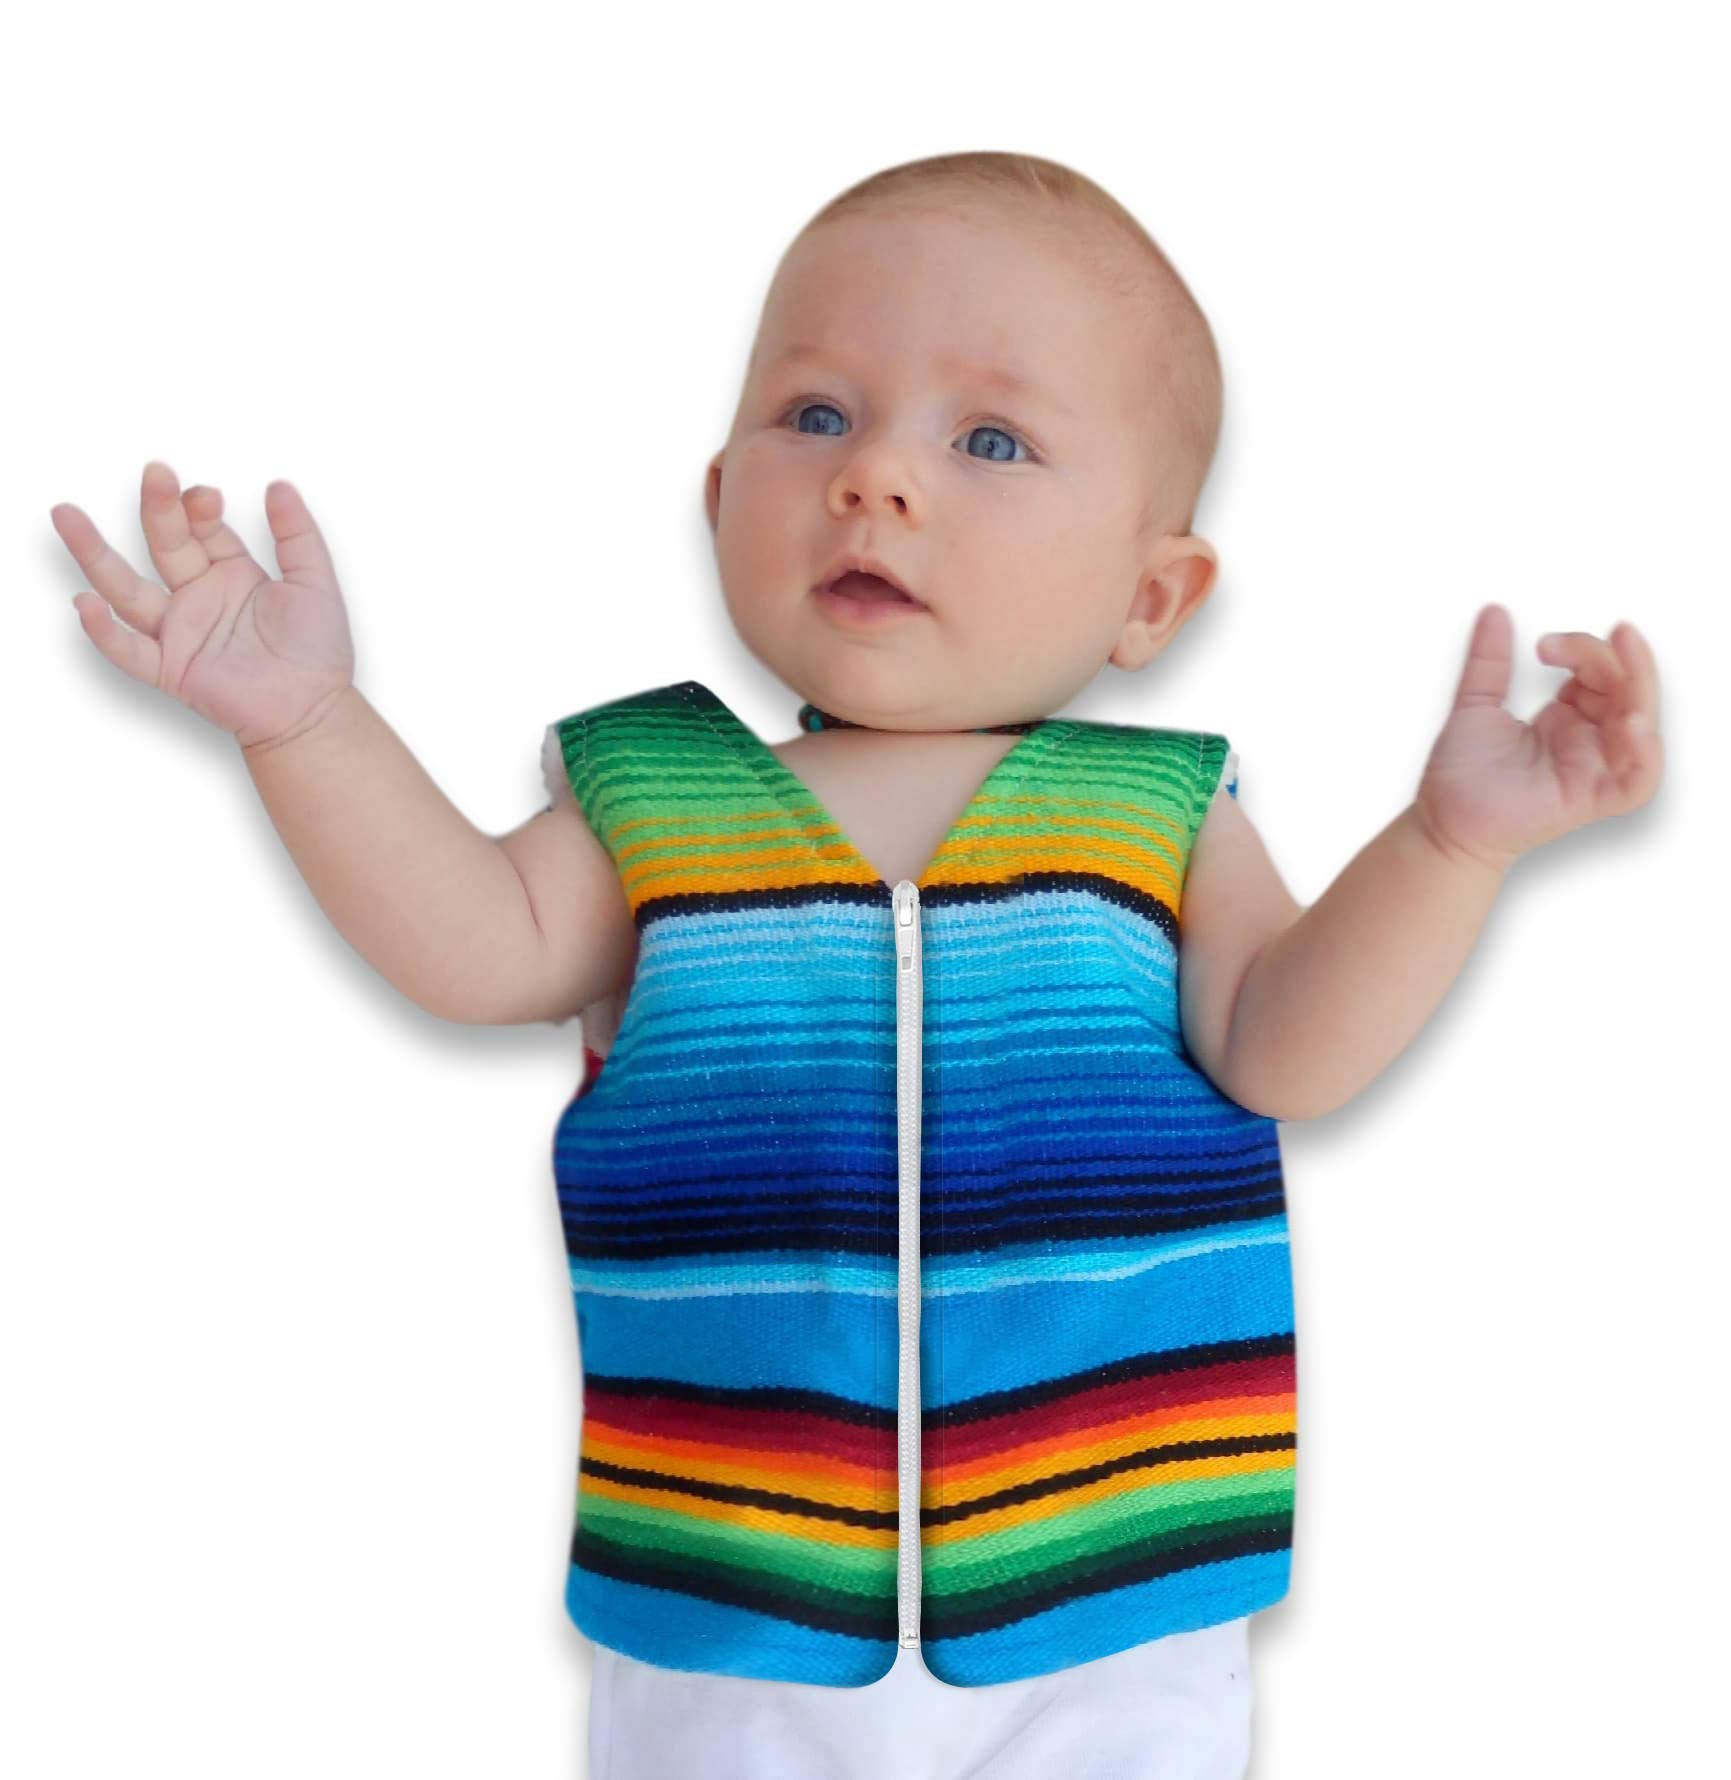 Handmade Baby Vest From Mexican Serape Blanket - Baby Shower Gifts For Boy or Girl - Newborn Baby Clothes (1 Year, Blue) by Baja Ponchos